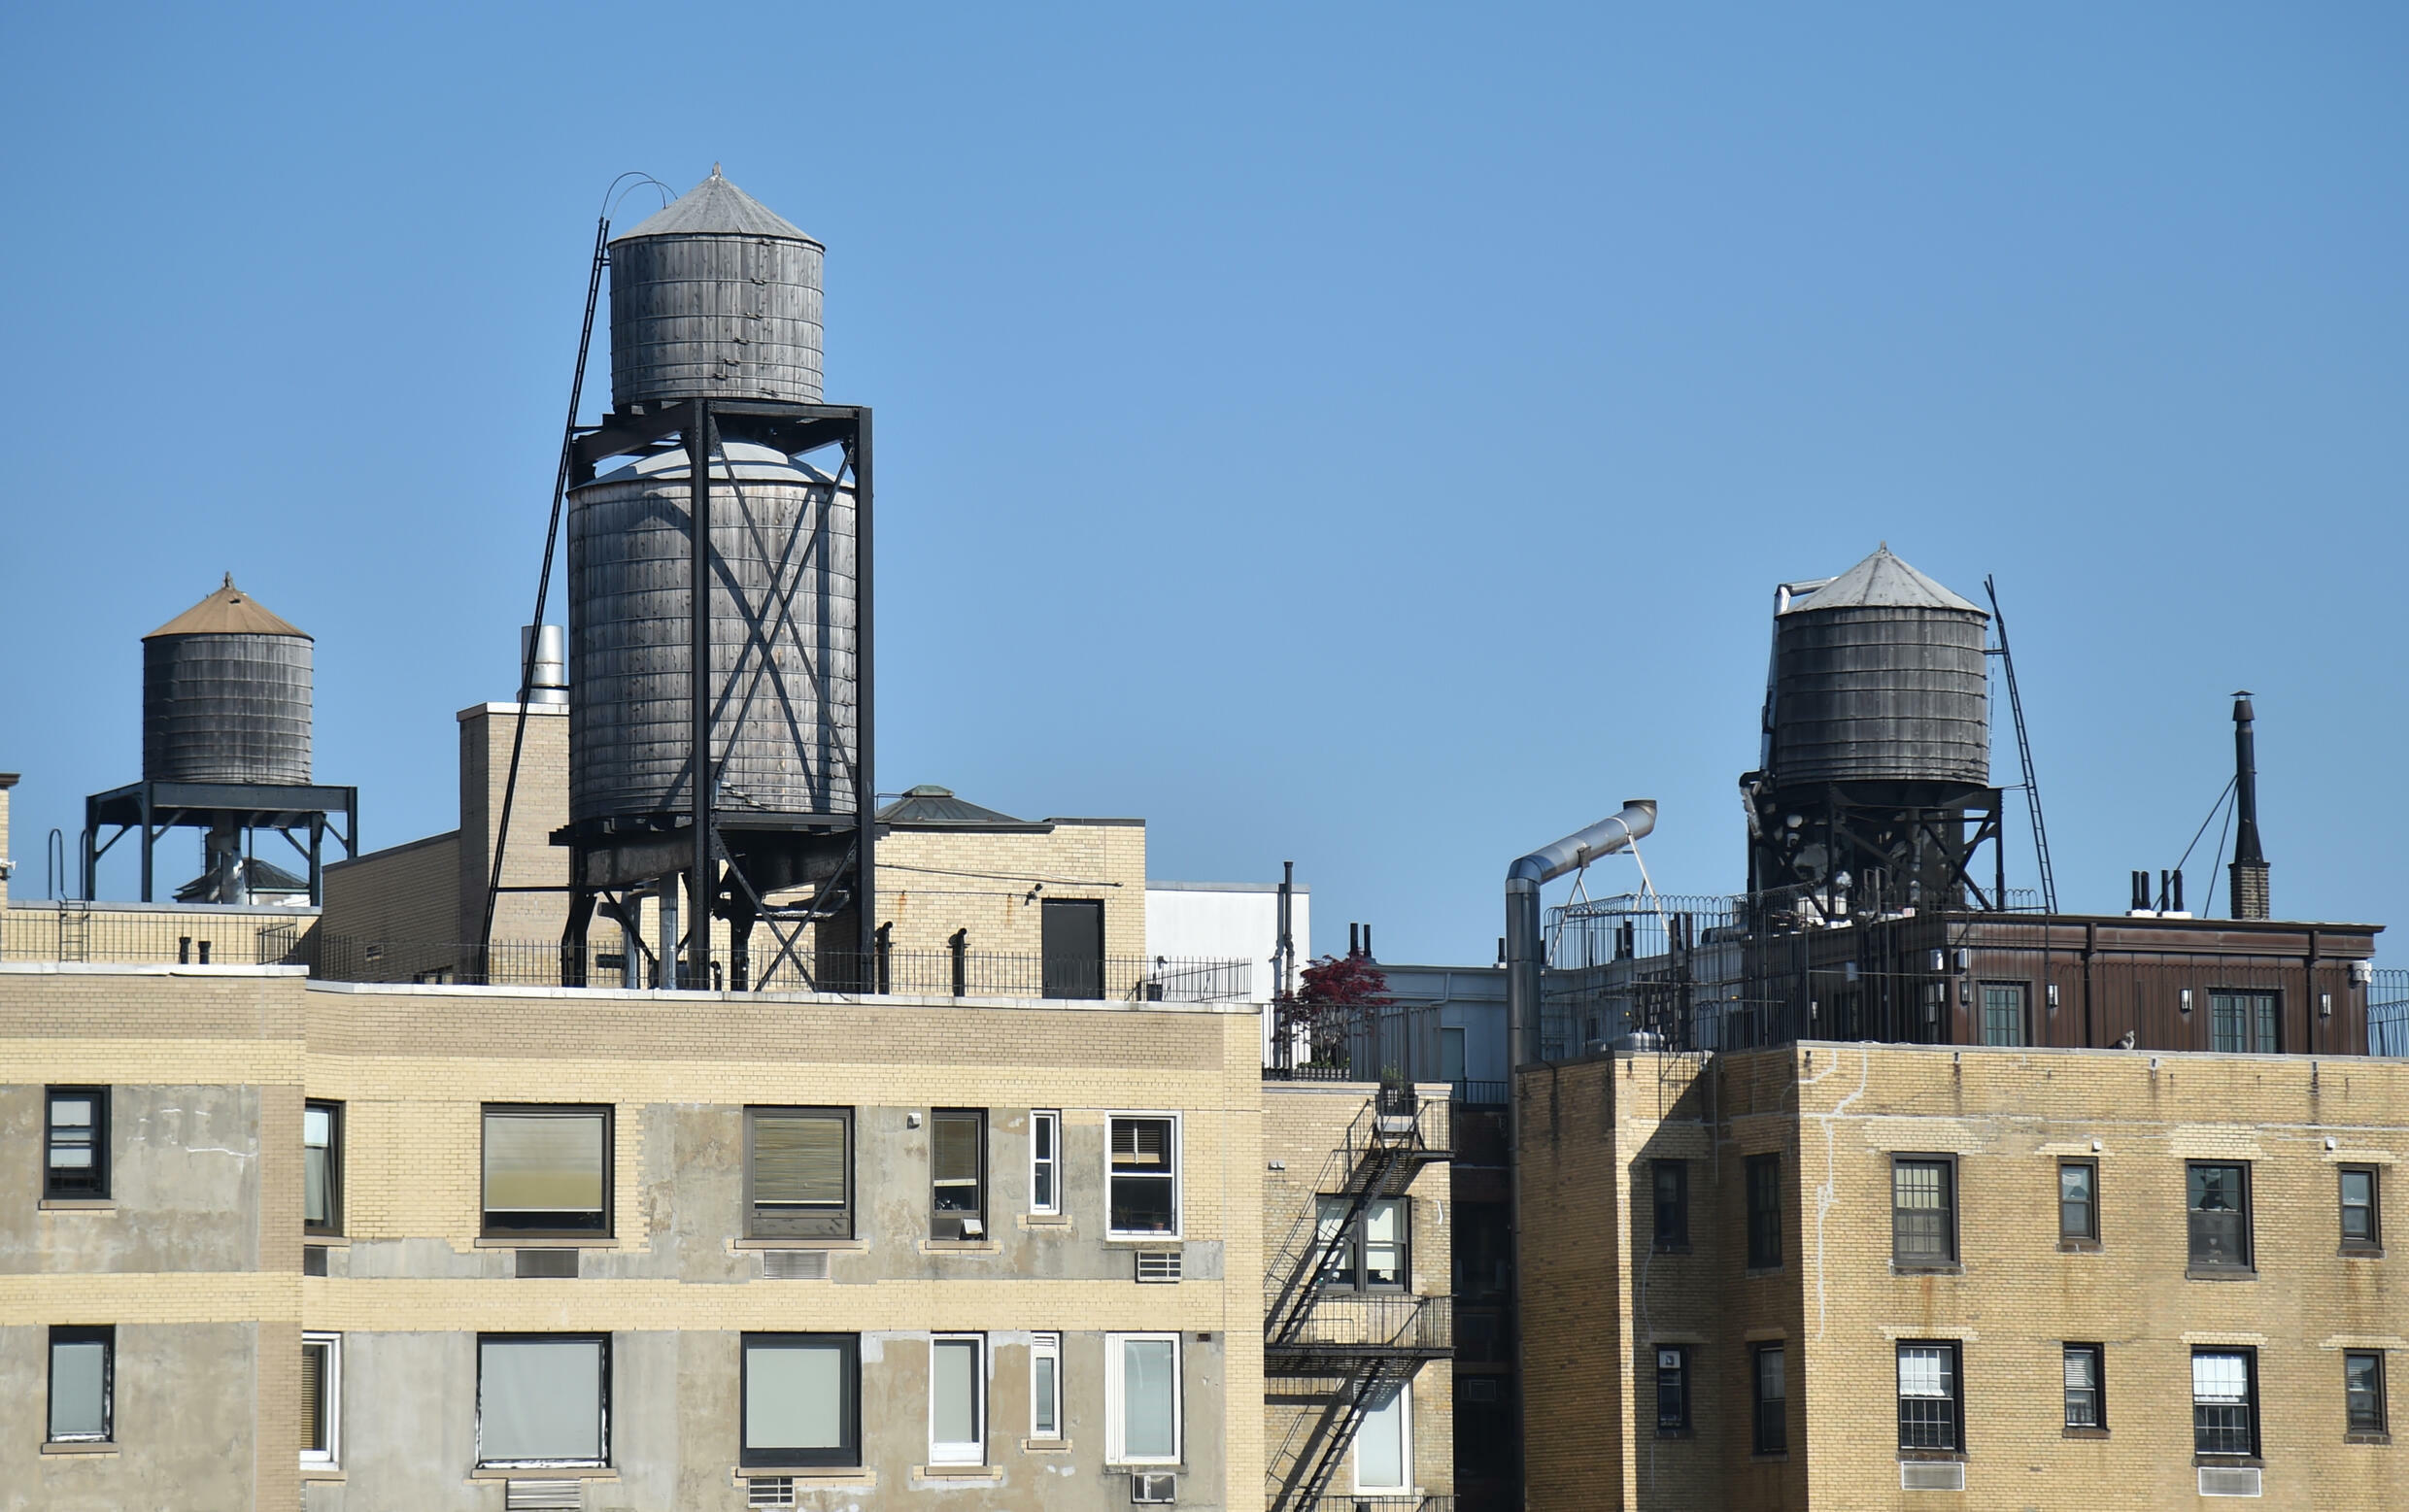 Water tanks on the roofs of buildings in New York in May 2018